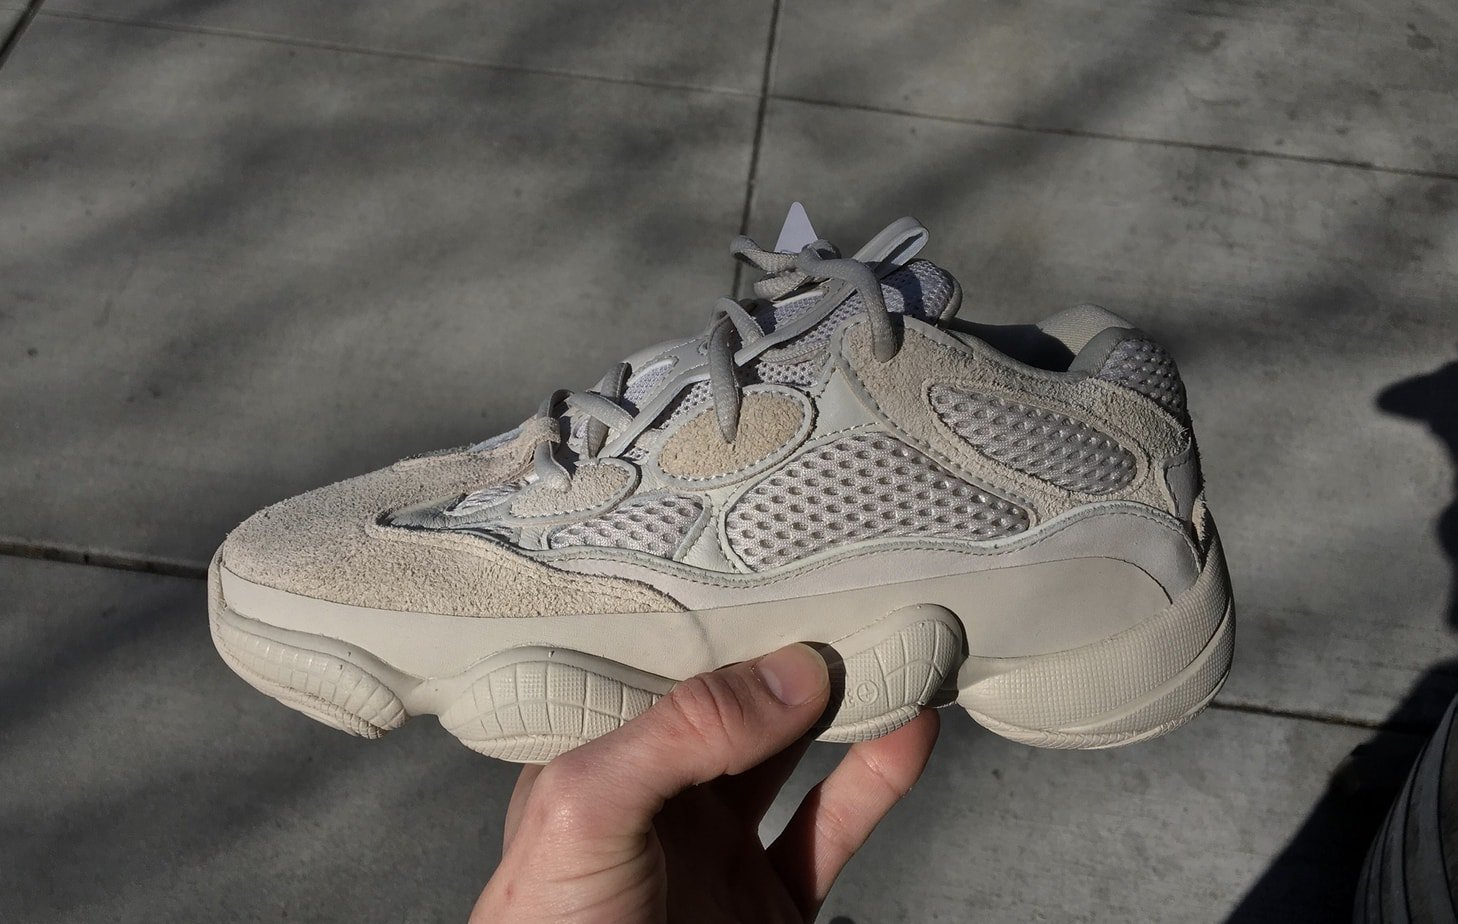 8bcd68278f9 Kanye West and adidas are slowly but surely rolling out a new model. The  unique adidas Yeezy 500 silhouette is first scheduled to ship to consumers  in March ...